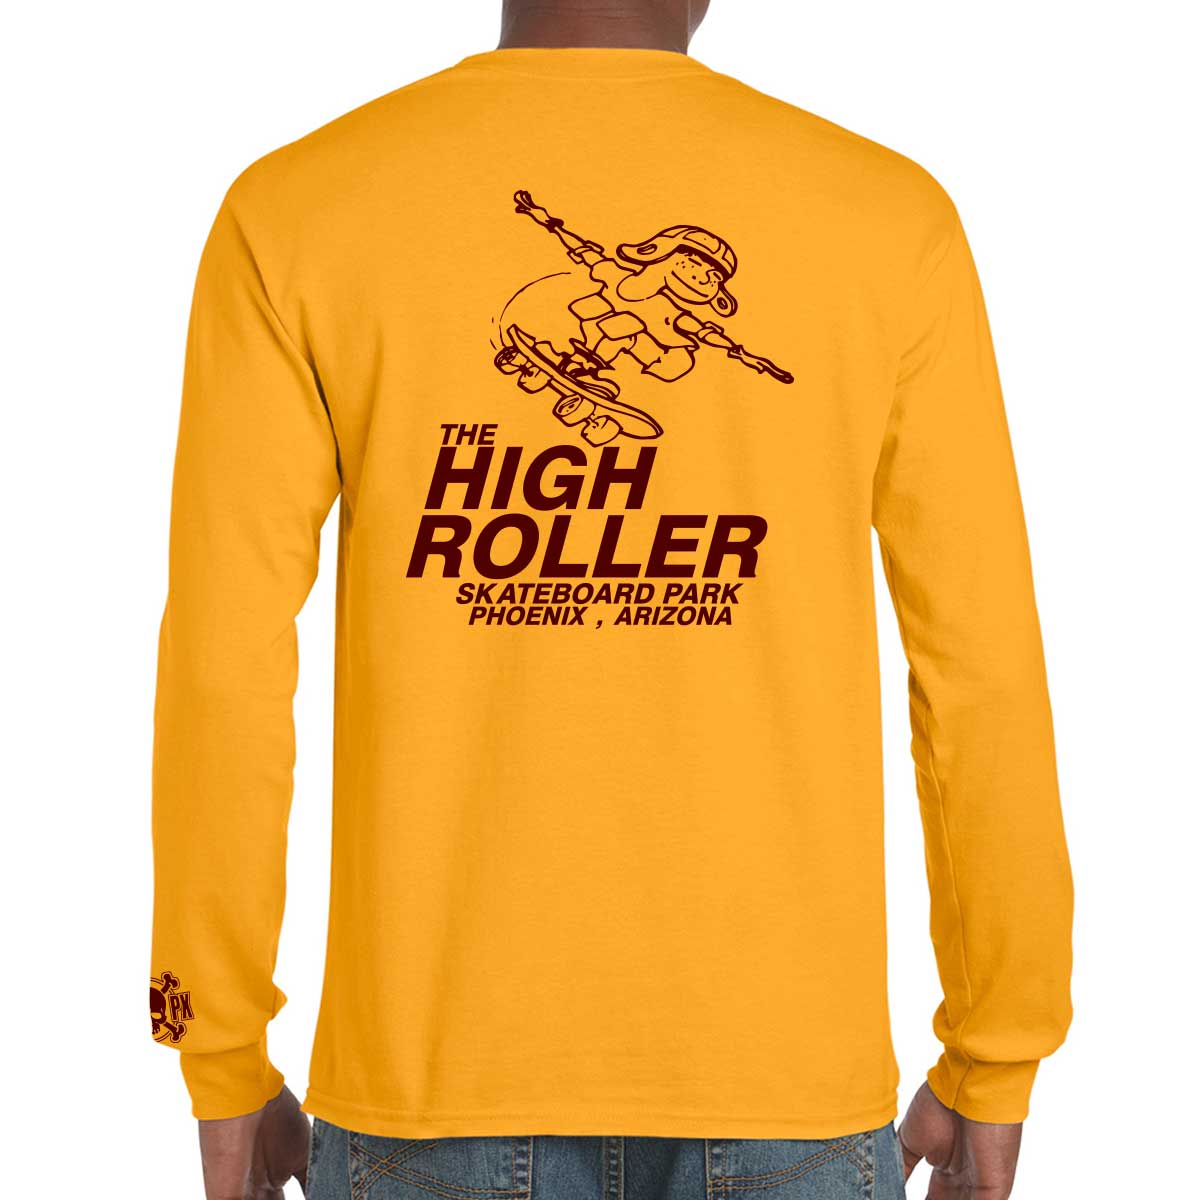 The High Roller Skateboard Park Gold Long Sleeve T-shirt